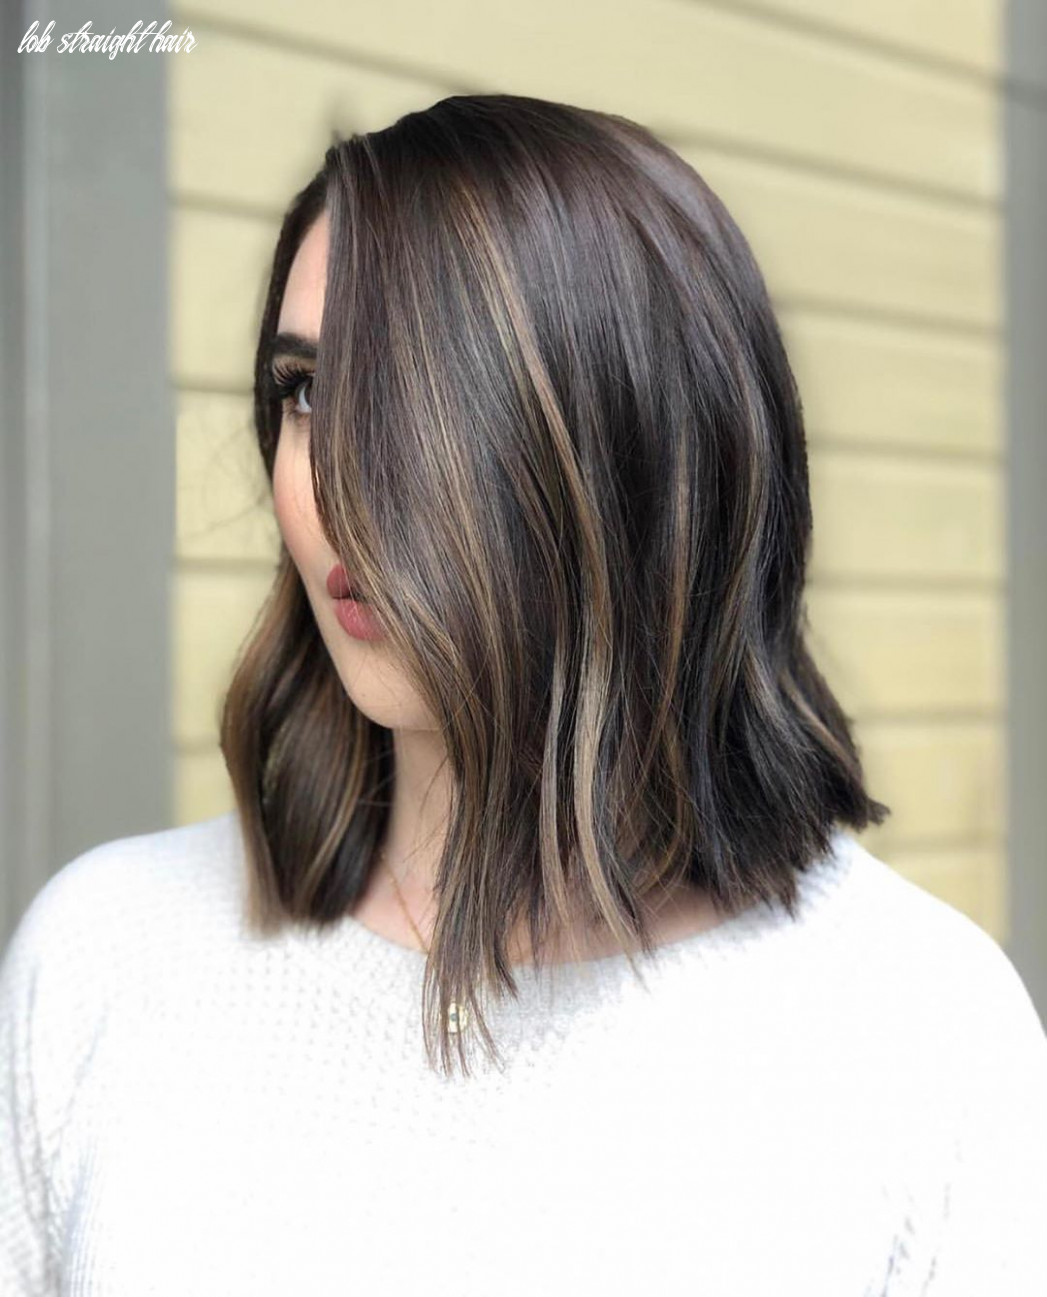 12 best lob haircuts & hairstyles | how to style your long bob lob straight hair